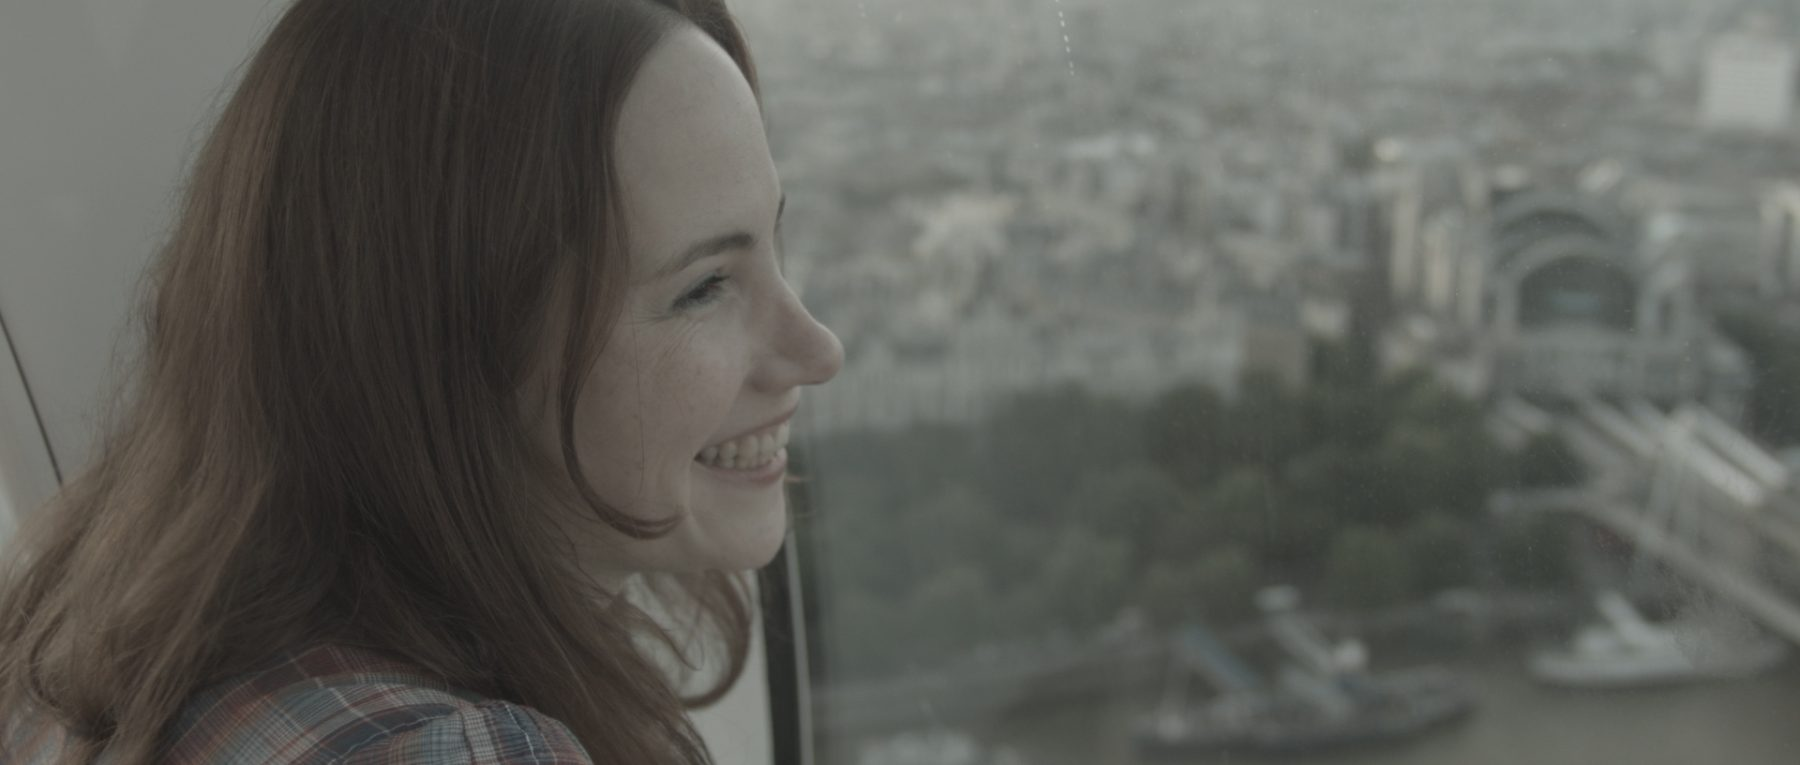 Colour Grading with LUT's in Premiere | Philip Bloom- Blog